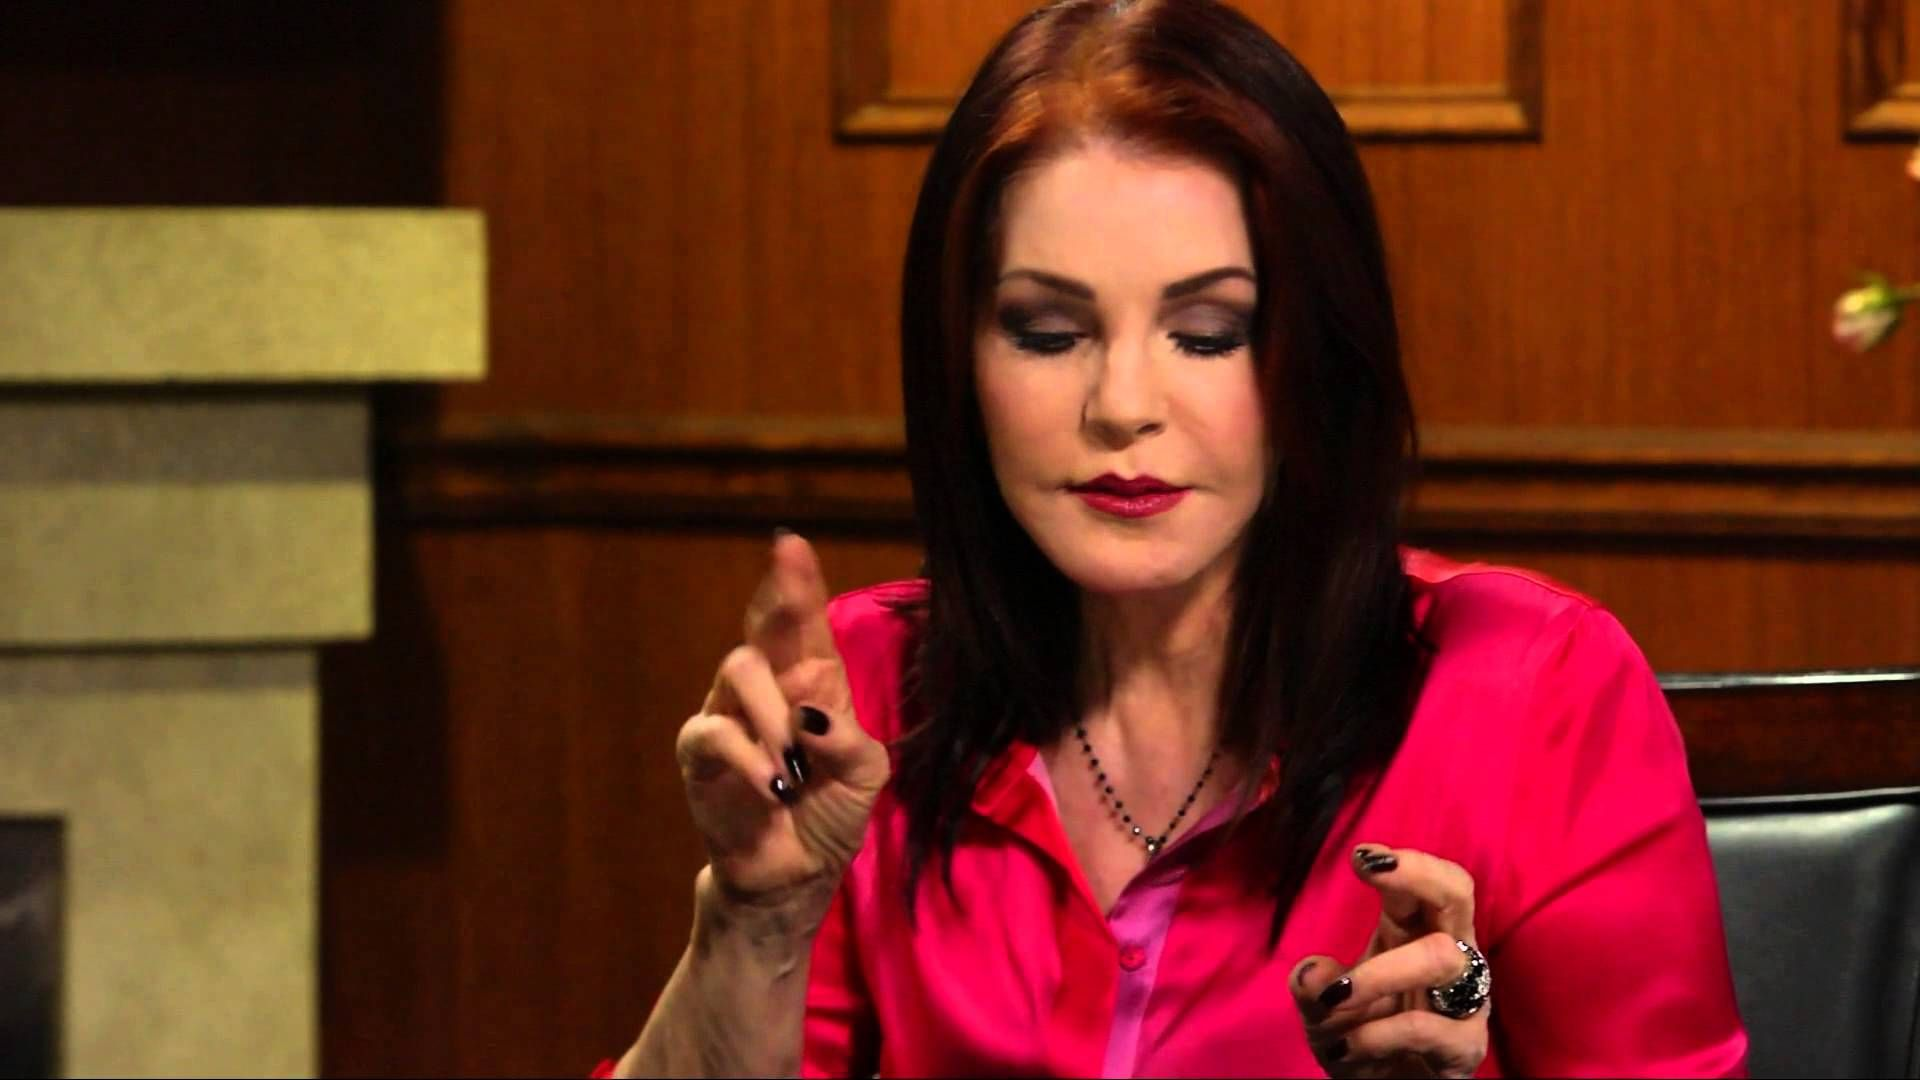 Priscilla Presley On Larry King Now Full Episode Available In The U Priscilla Presley Elvis Impersonator Elvis Presley